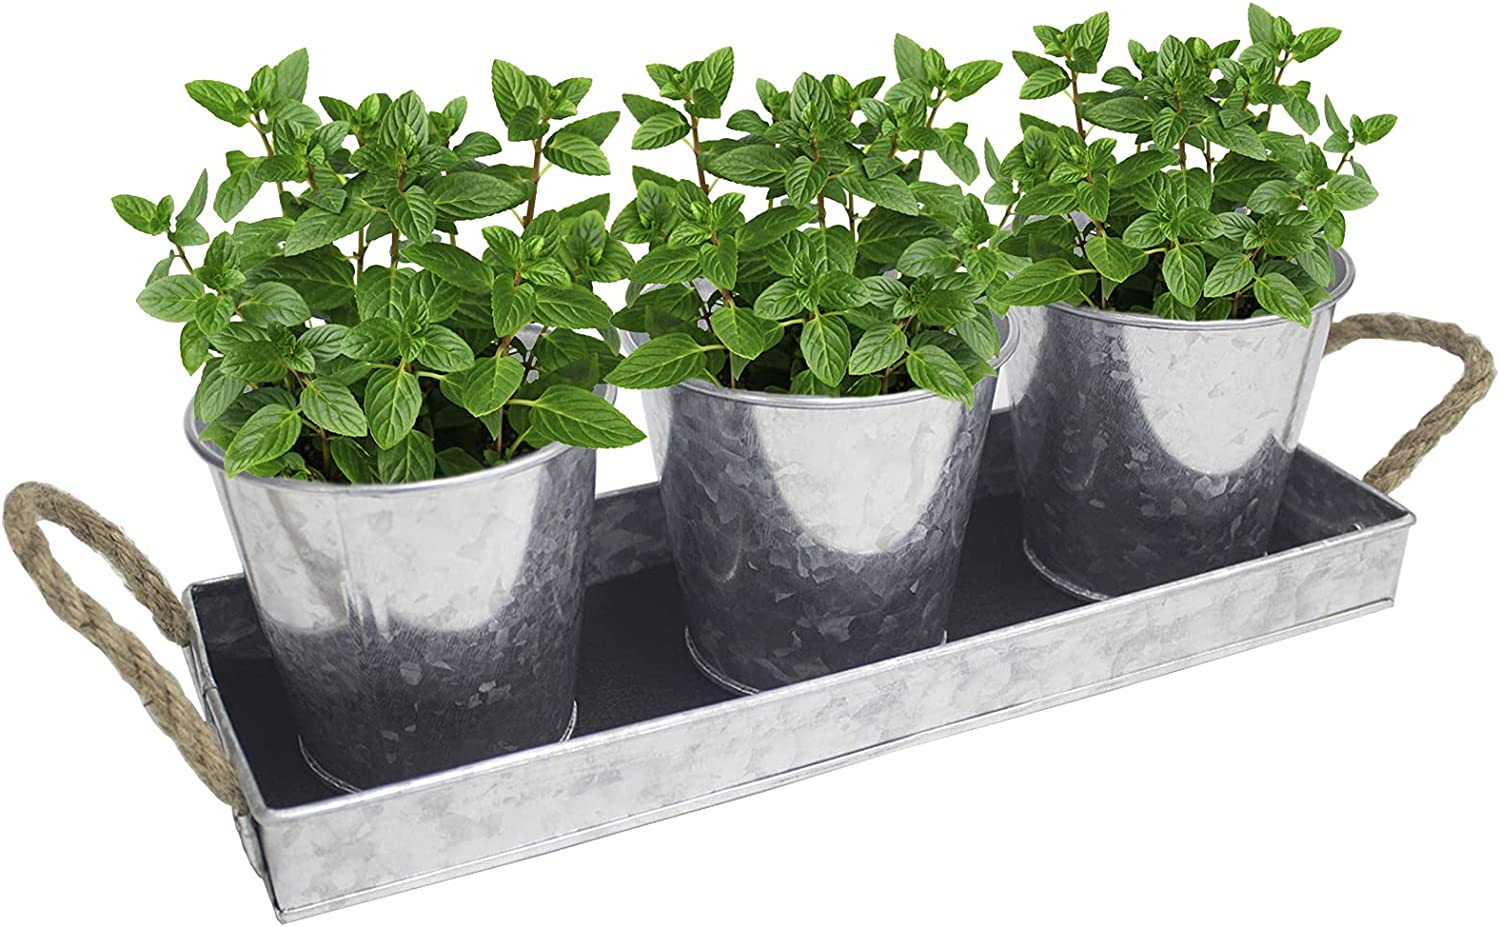 EITMOW S/3 Galvanized Herb Flower Pots with Rectangular Tray and Capillary Mat Metal Vintage Succulent Herb Planter Pots Tray Caddy Suitable for Kitchen windowsill Indoor or Outdoor (2 Sets Pack)